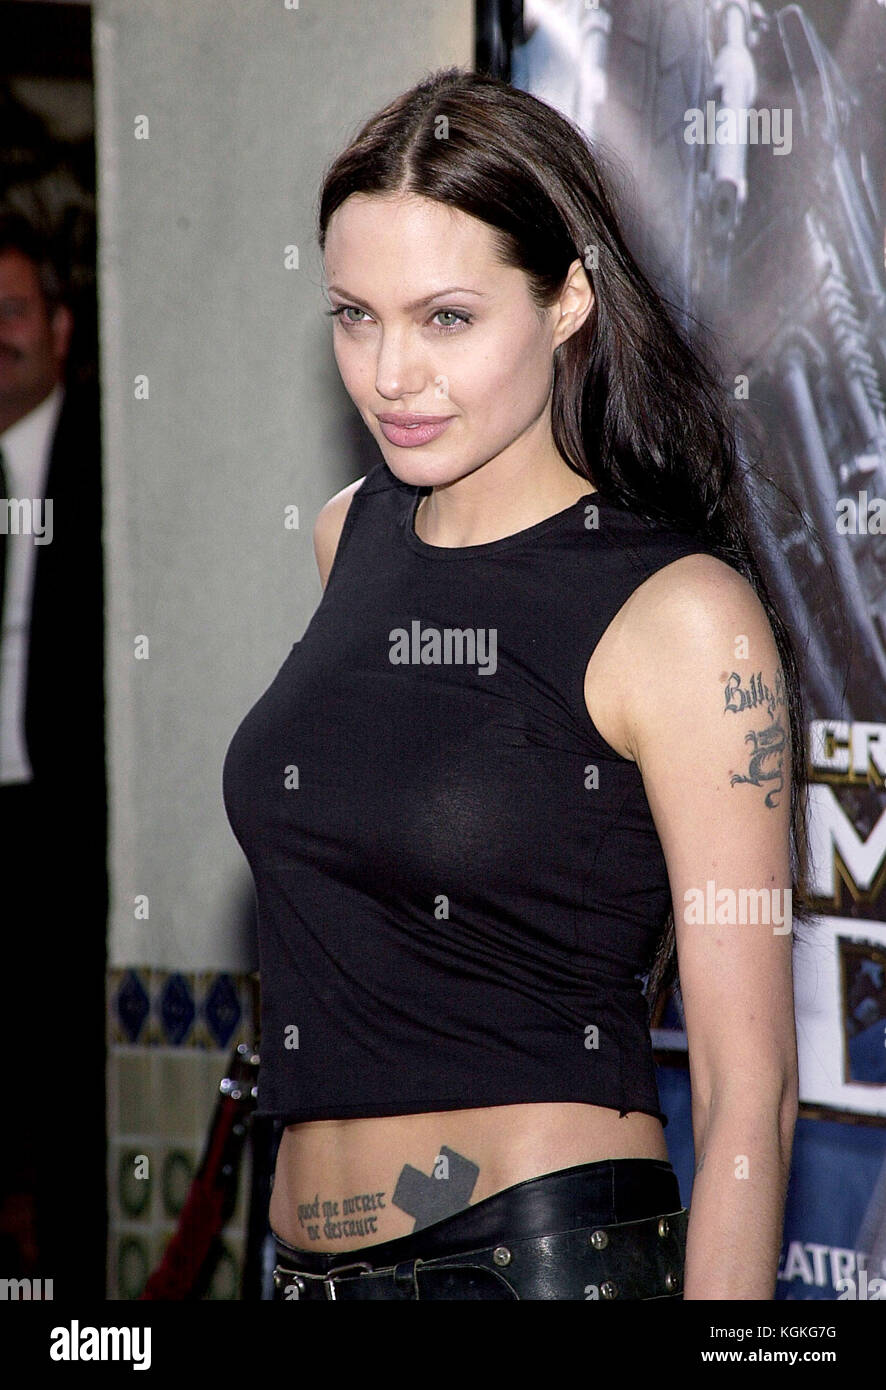 Angelina Jolie Arriving At The Lara Croft Tomb Raider Premiere At